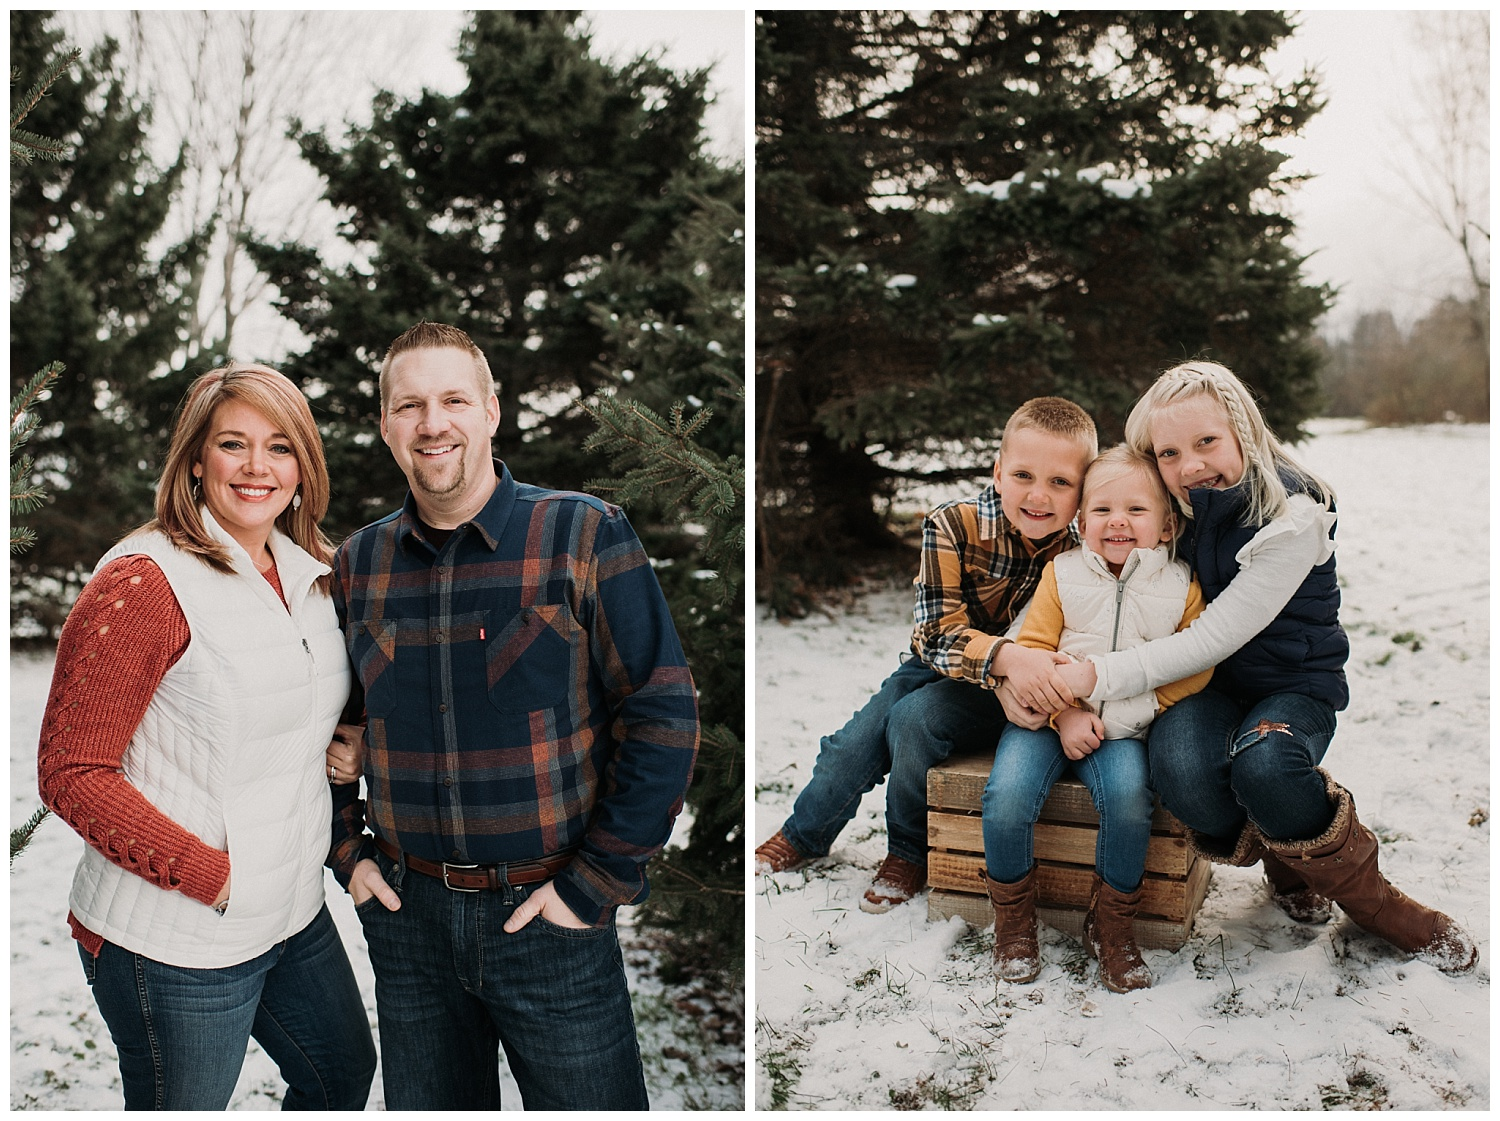 Pewaukee-family-photographer-2019 (3).jpg